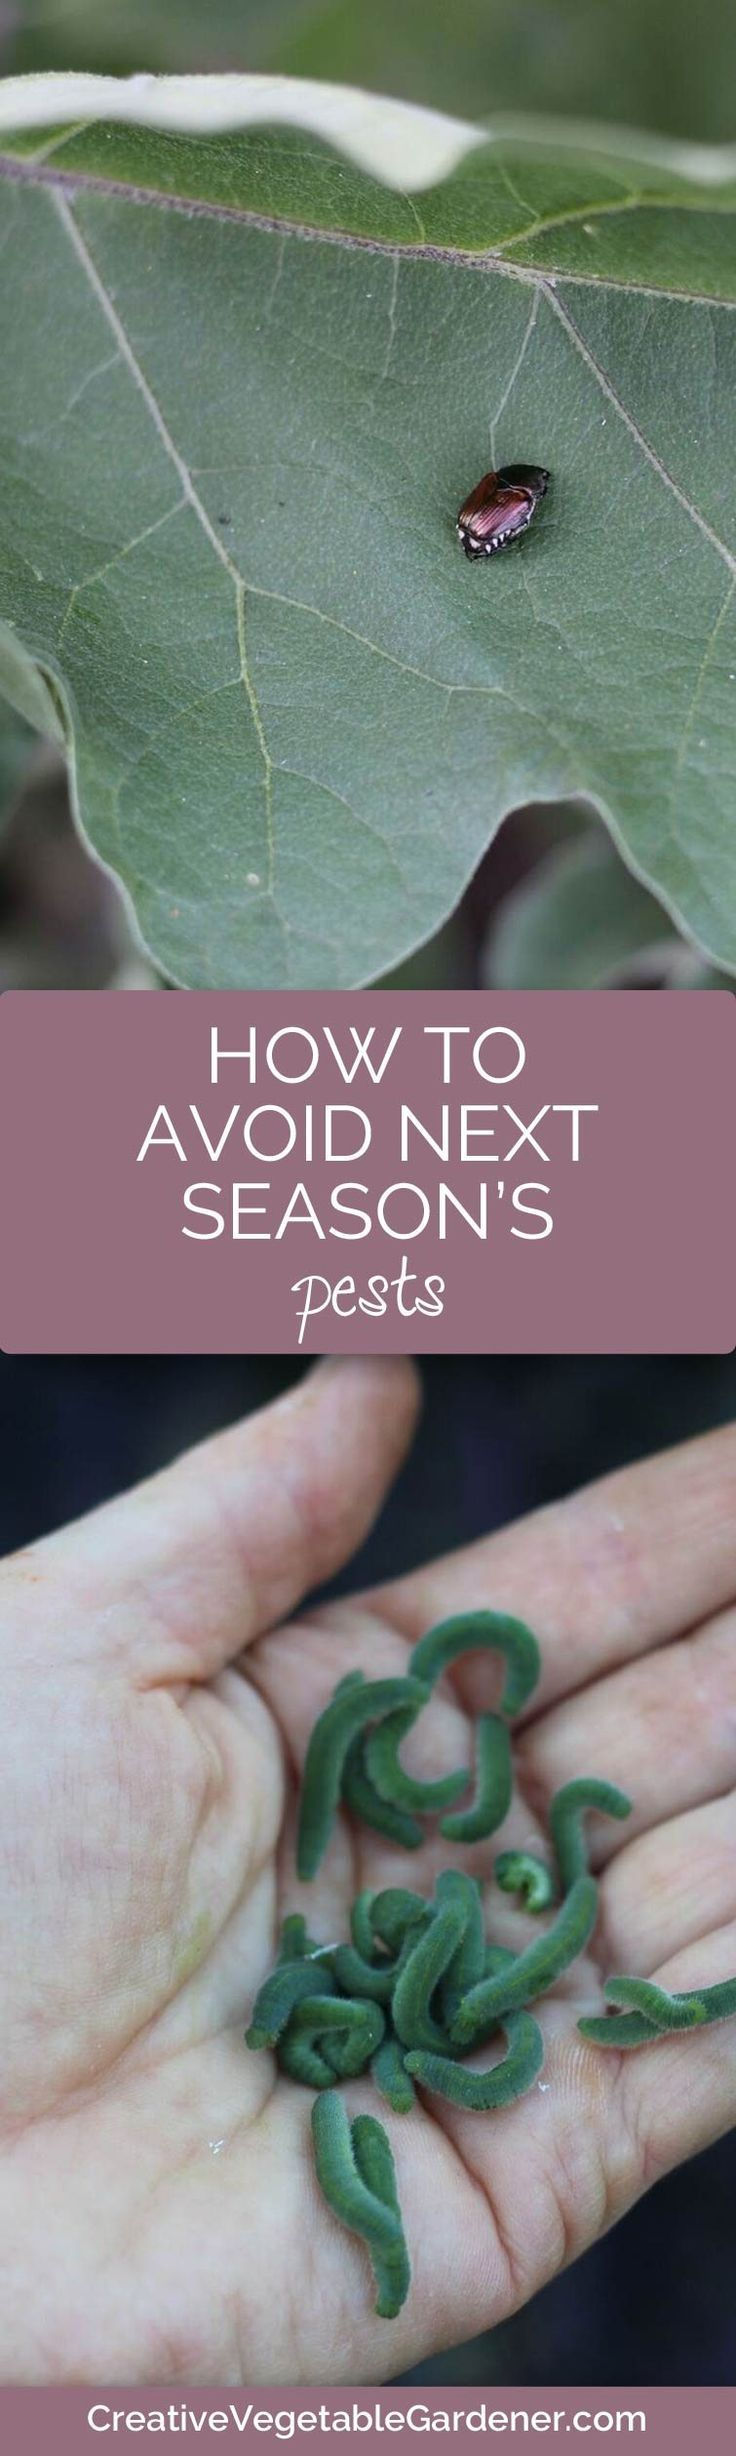 If you've had lots of pest problems in your garden this season here are some things you can do to prevent them next year.